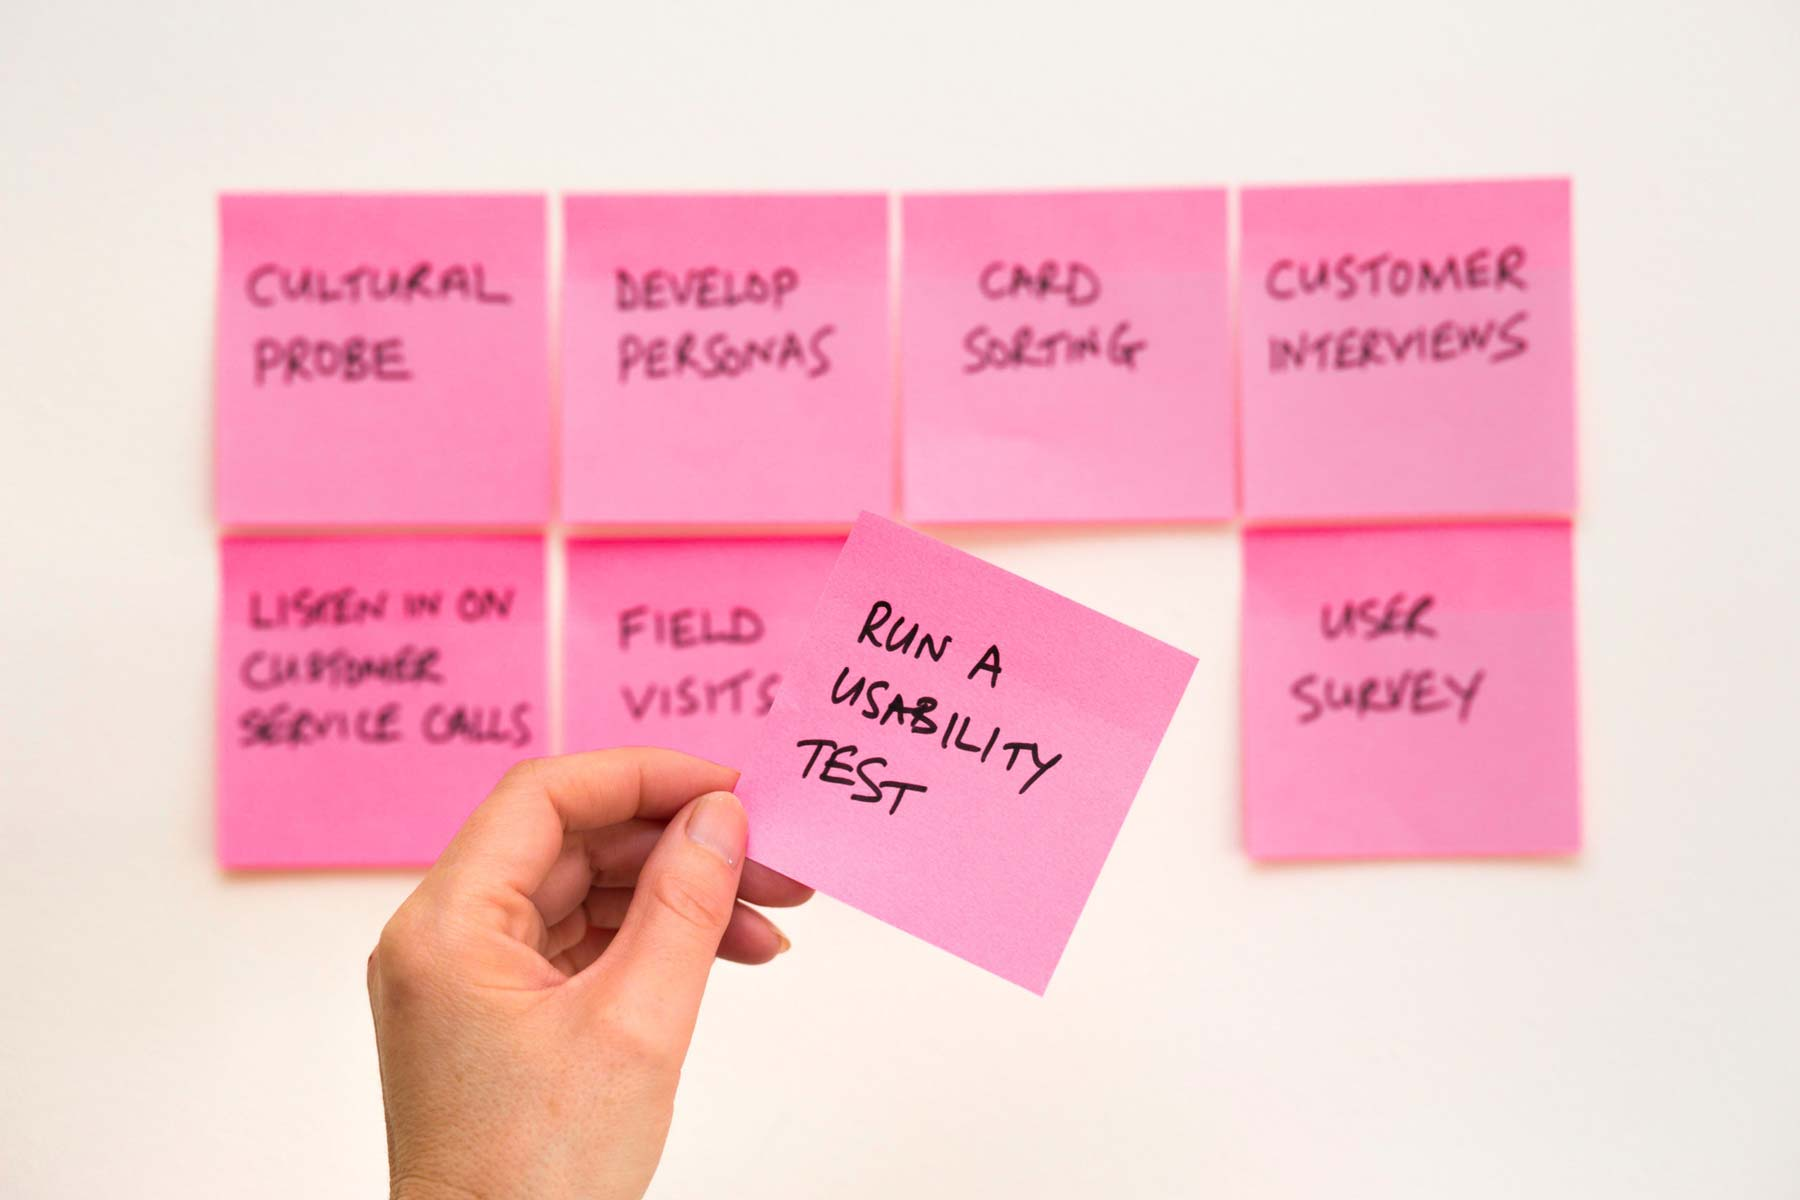 Usability Testing and User Tests